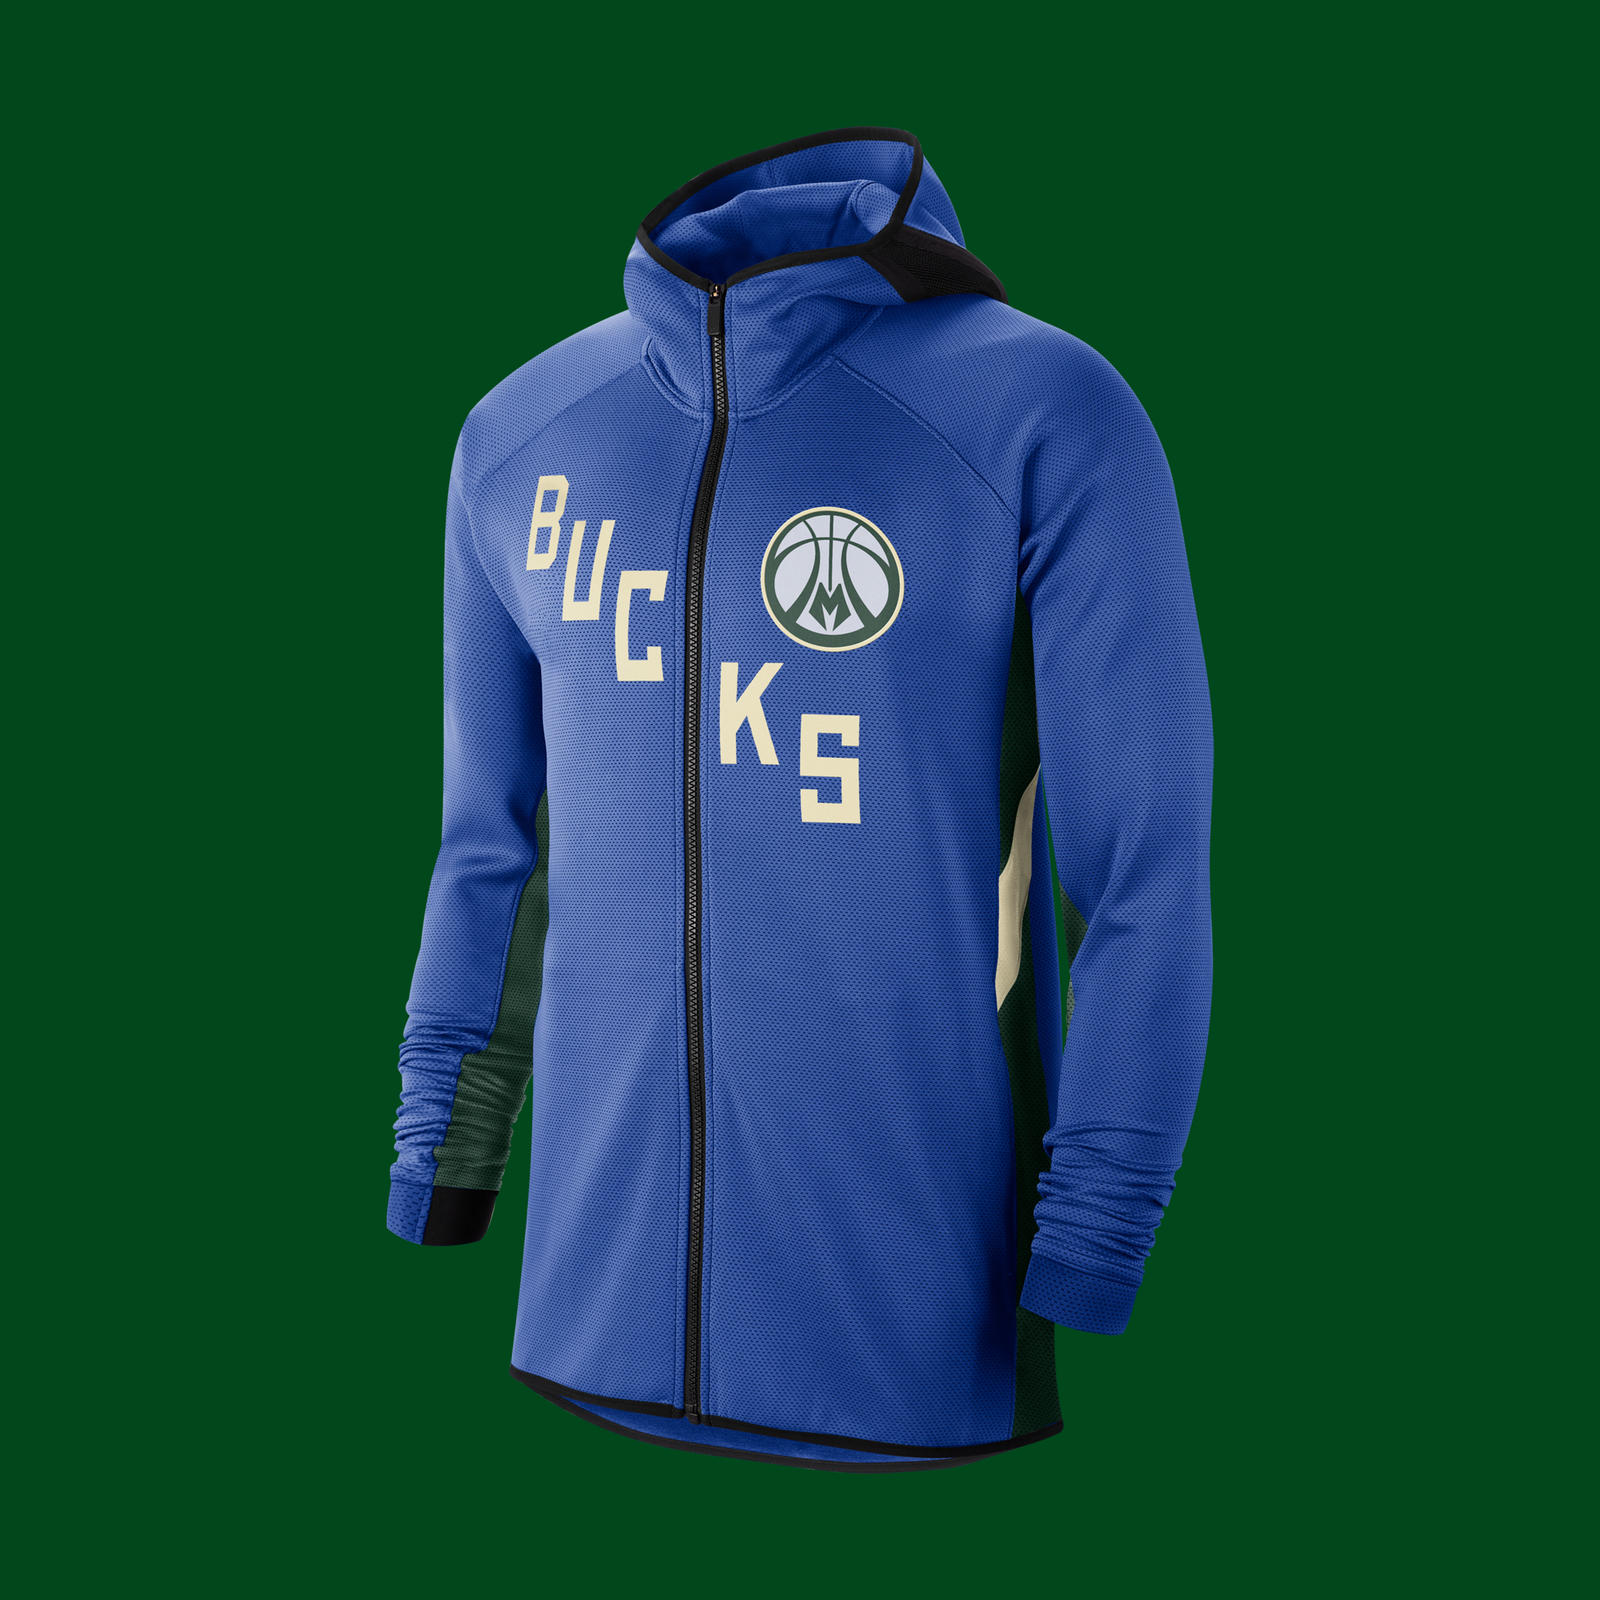 Nike NBA Earned Edition Showtime Hoodies 2019-20 Official Images 11